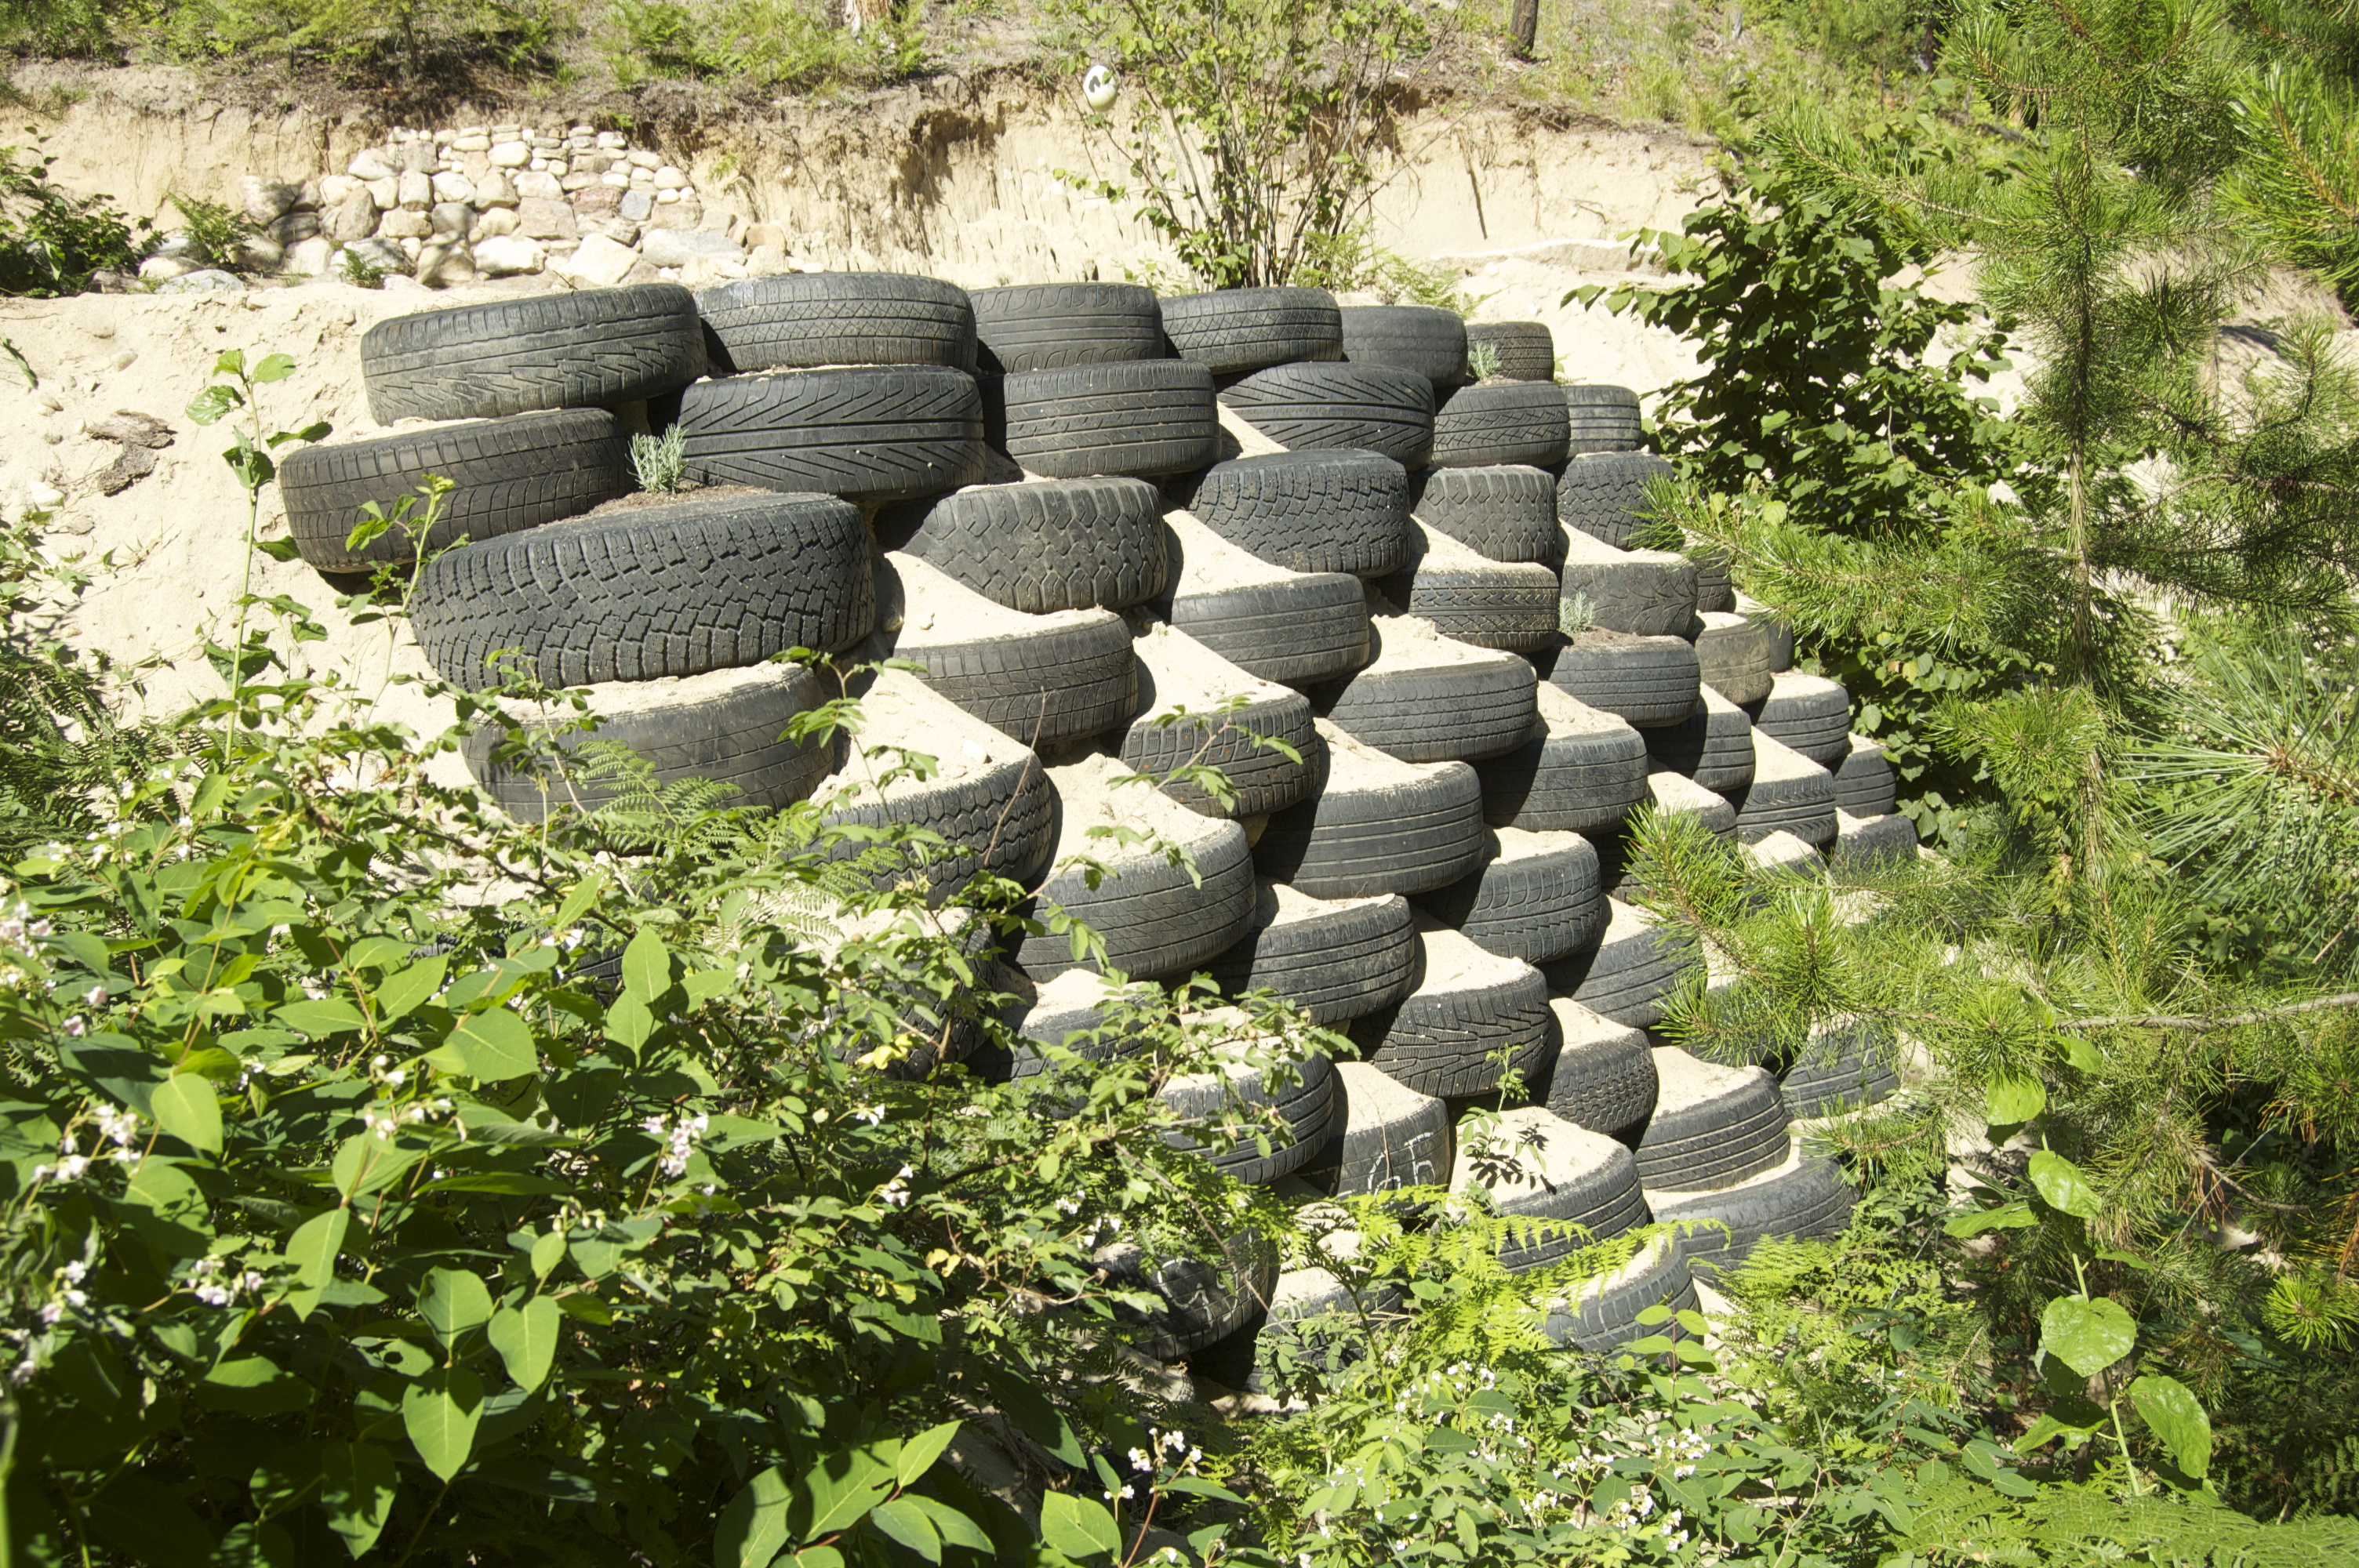 Building Tire Retaining Wall on Sand (earthship forum at permies)